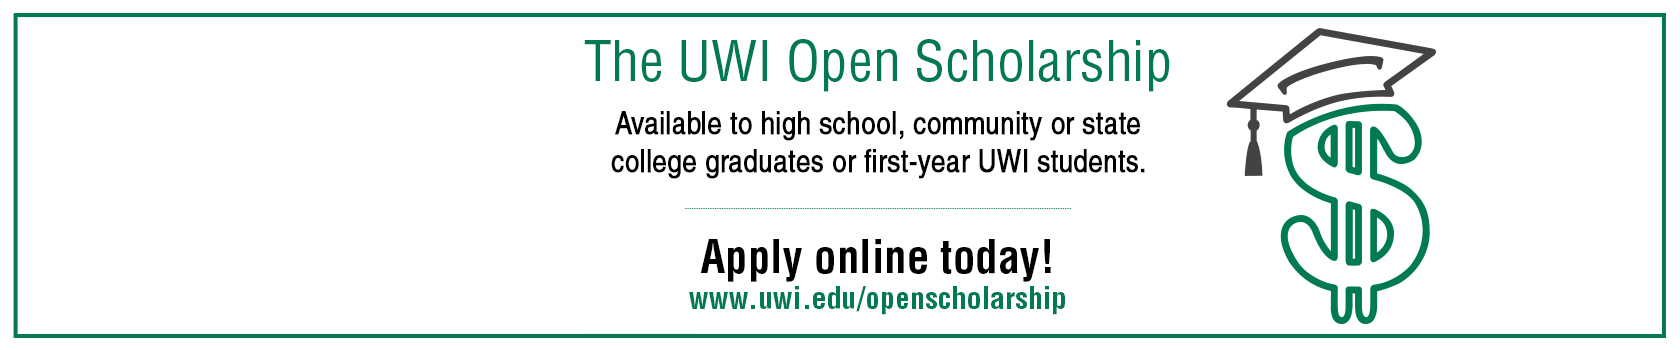 The UWI Open Scholarship